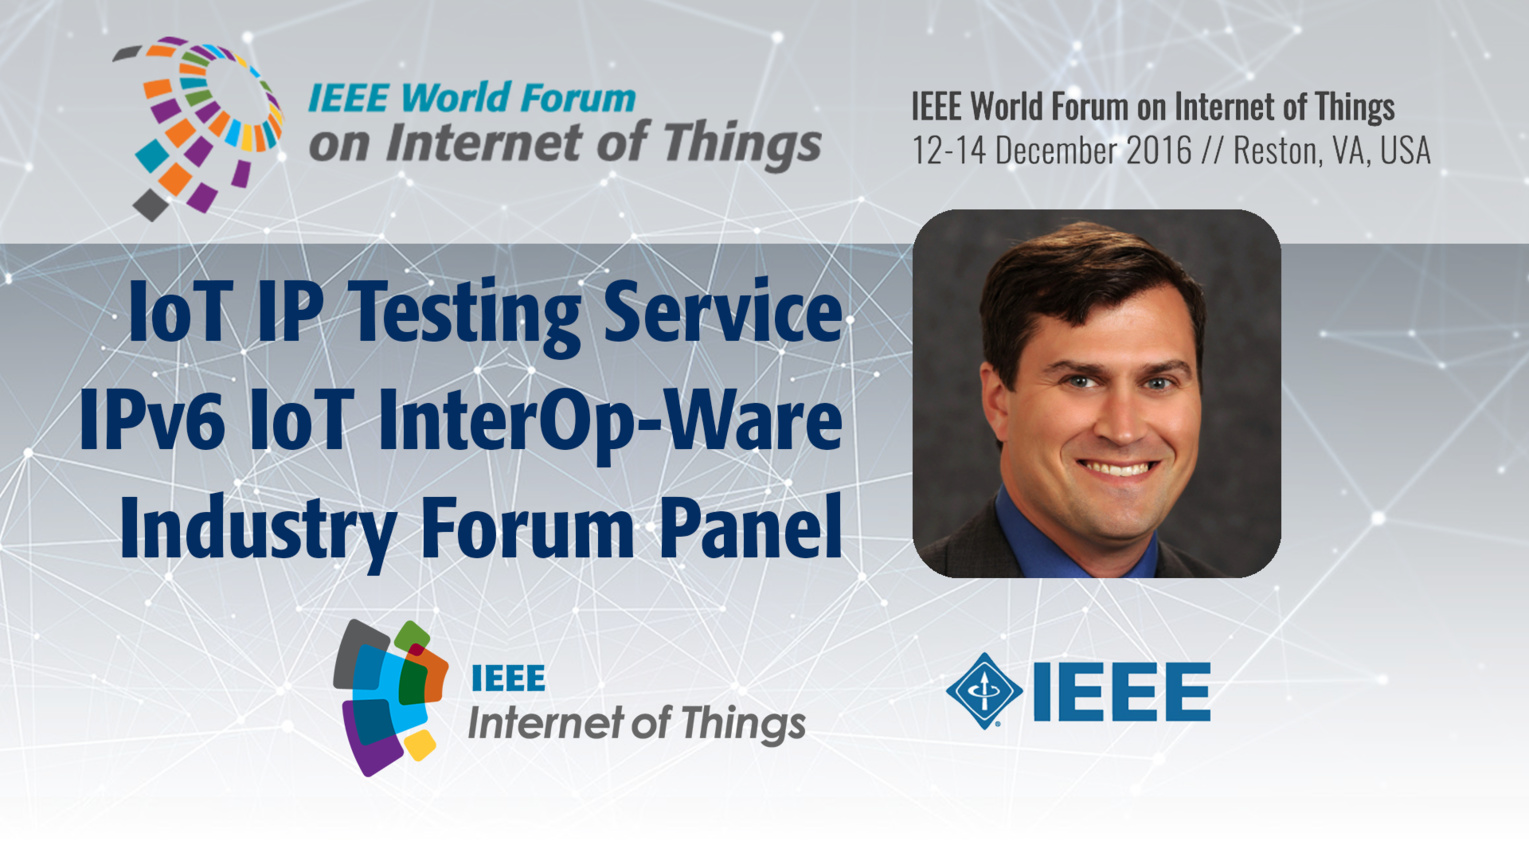 Tim Winters: Internet of Things IP Testing Service - IPv6 IoT InterOp-Ware Industry Forum Panel: WF IoT 2016